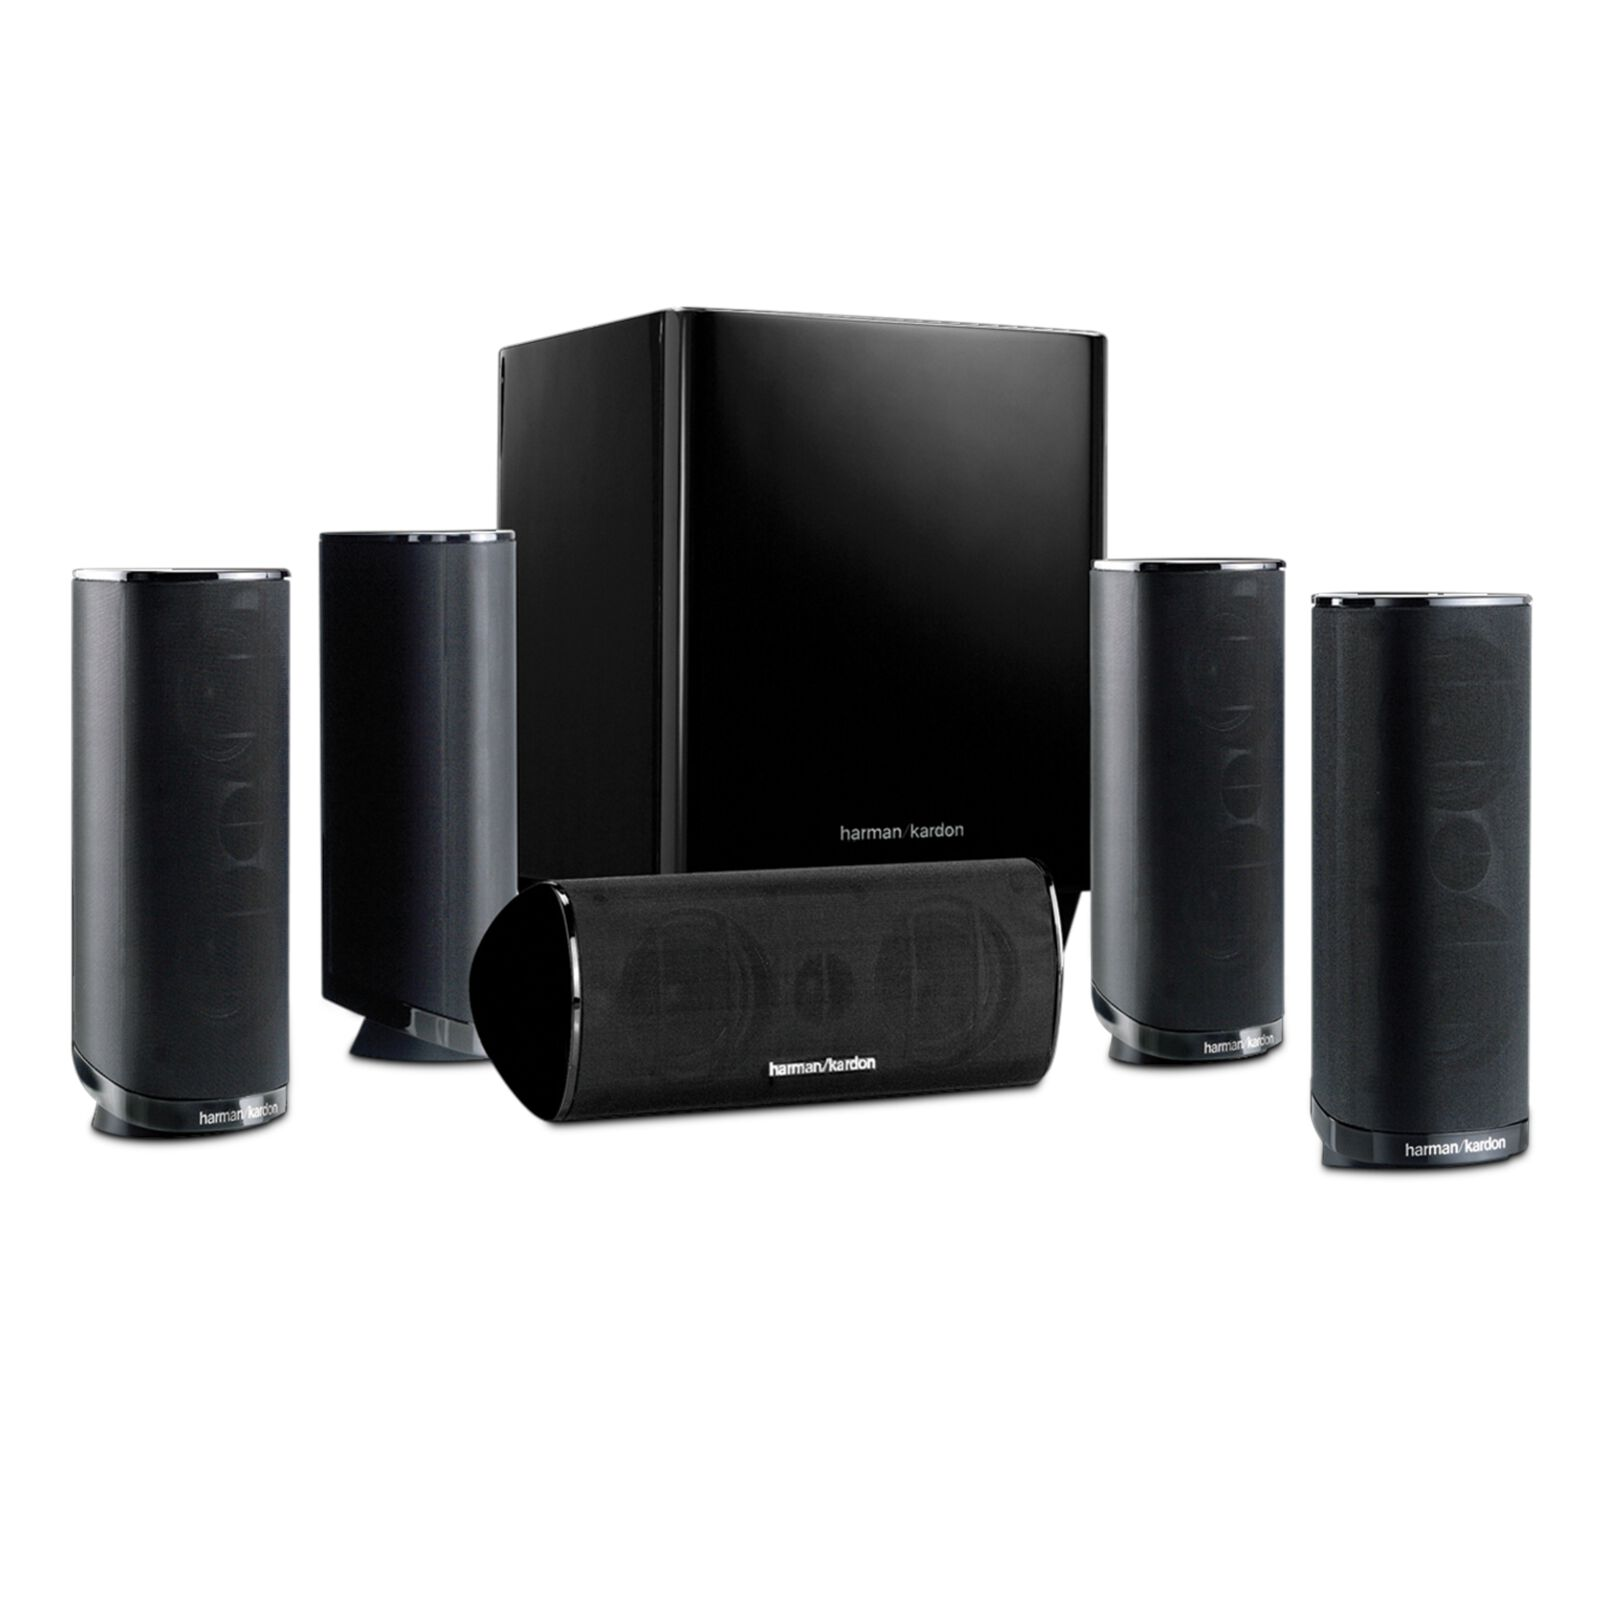 harman kardon HKTS 16 Black Lacquer